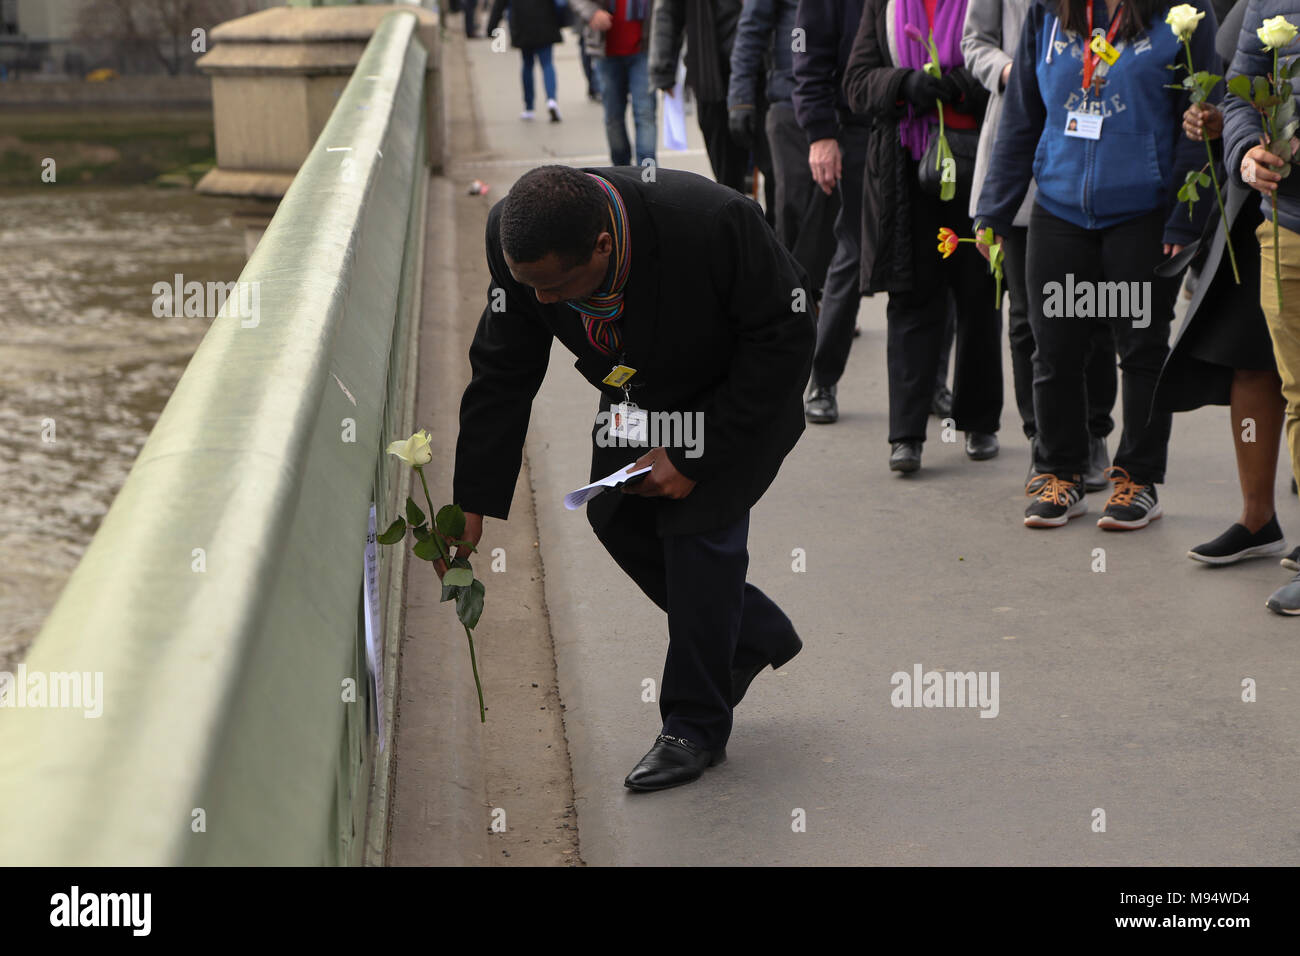 Westminster Bridge, London, United Kingdom. 22nd March 2018. London united: one year on from the terror attacks in Westminster - Memorial ceremony commemorating the first anniversary of the Westminster Terror attacks and the death of Keith Palmer and all others killed in the terror attack on the 22 March 2017. Credit: Aron Robert Williams/ Alamy Live News - Stock Image